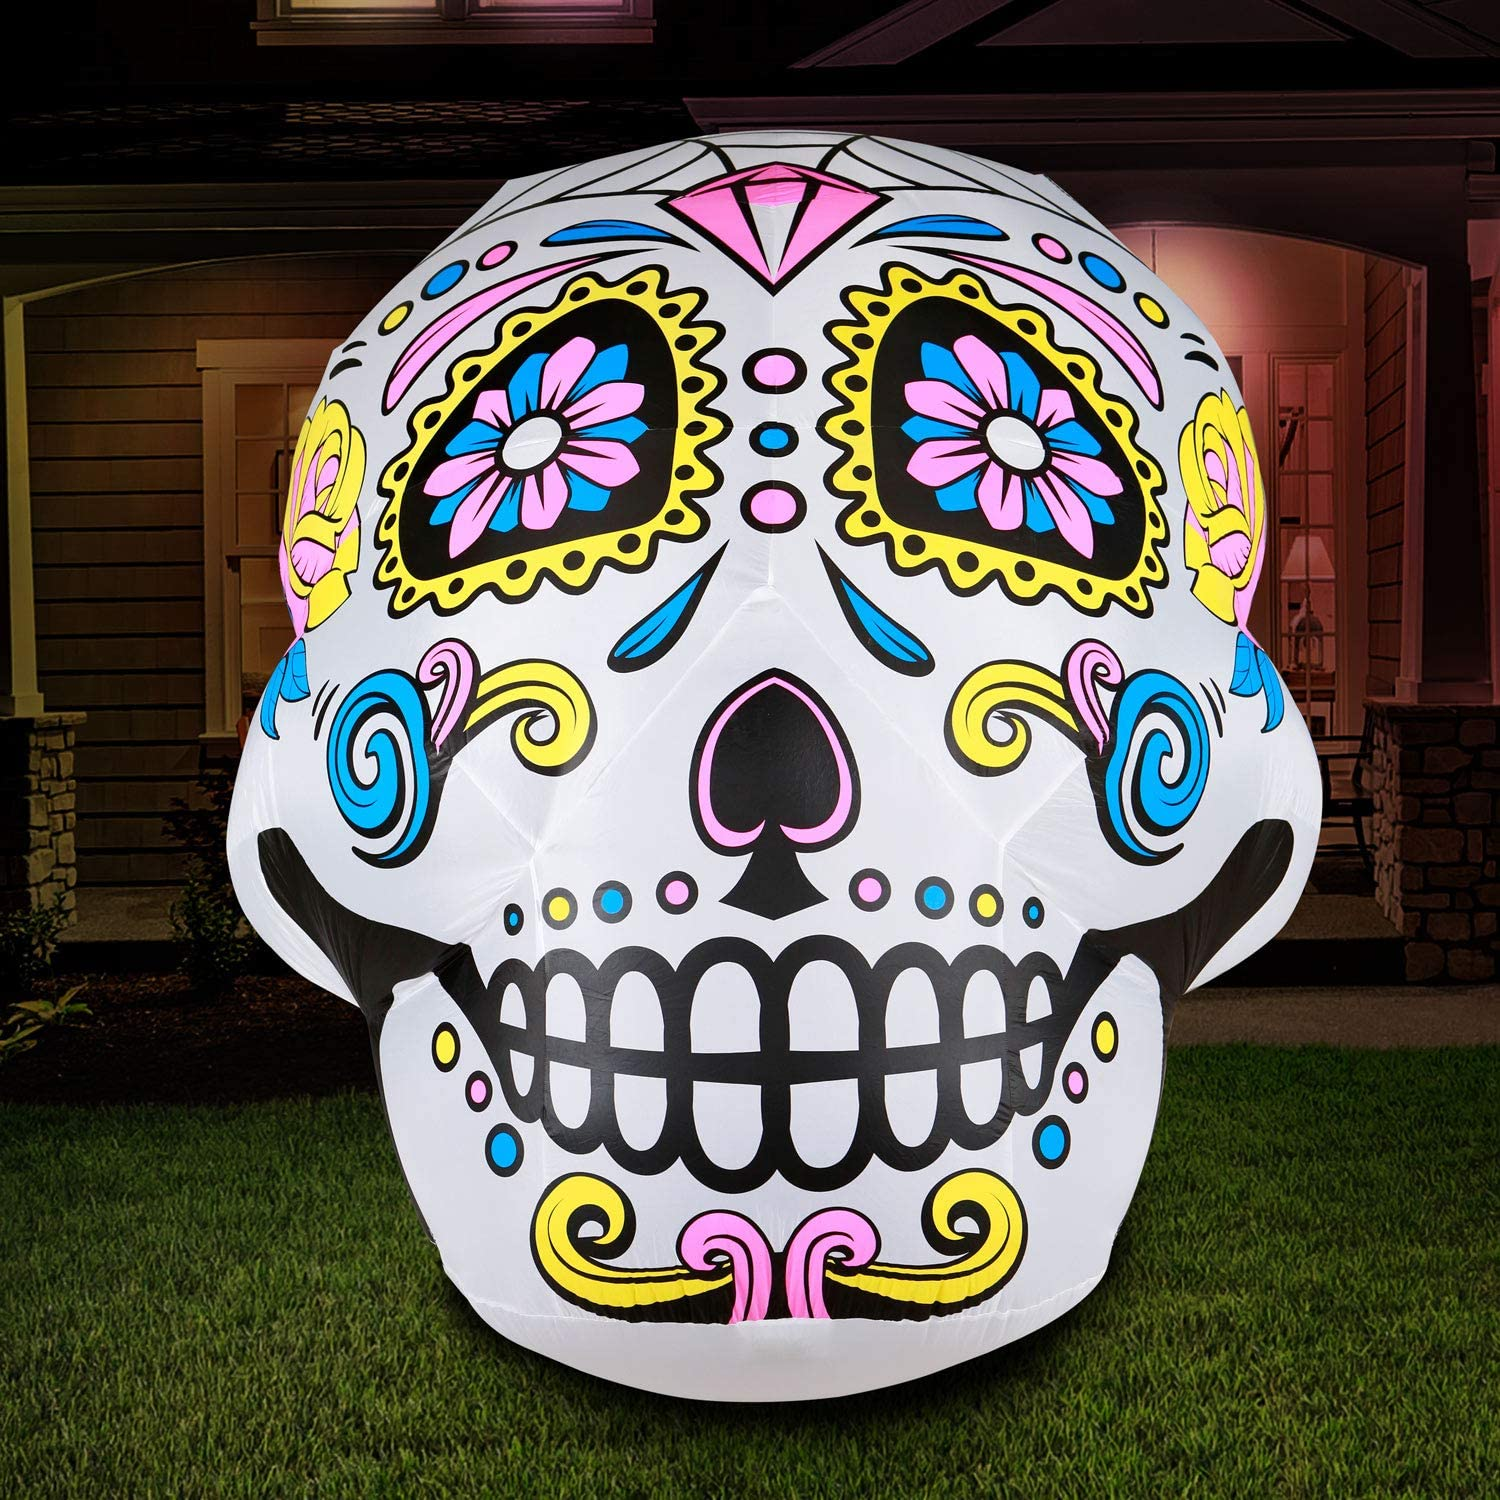 Holidayana Halloween Skull Yard Inflatable - 6 ft Tall Inflatable Sugar Skull Yard Decoration with Super Bright Internal Lights, Built-in Fan, and Anchor Ropes